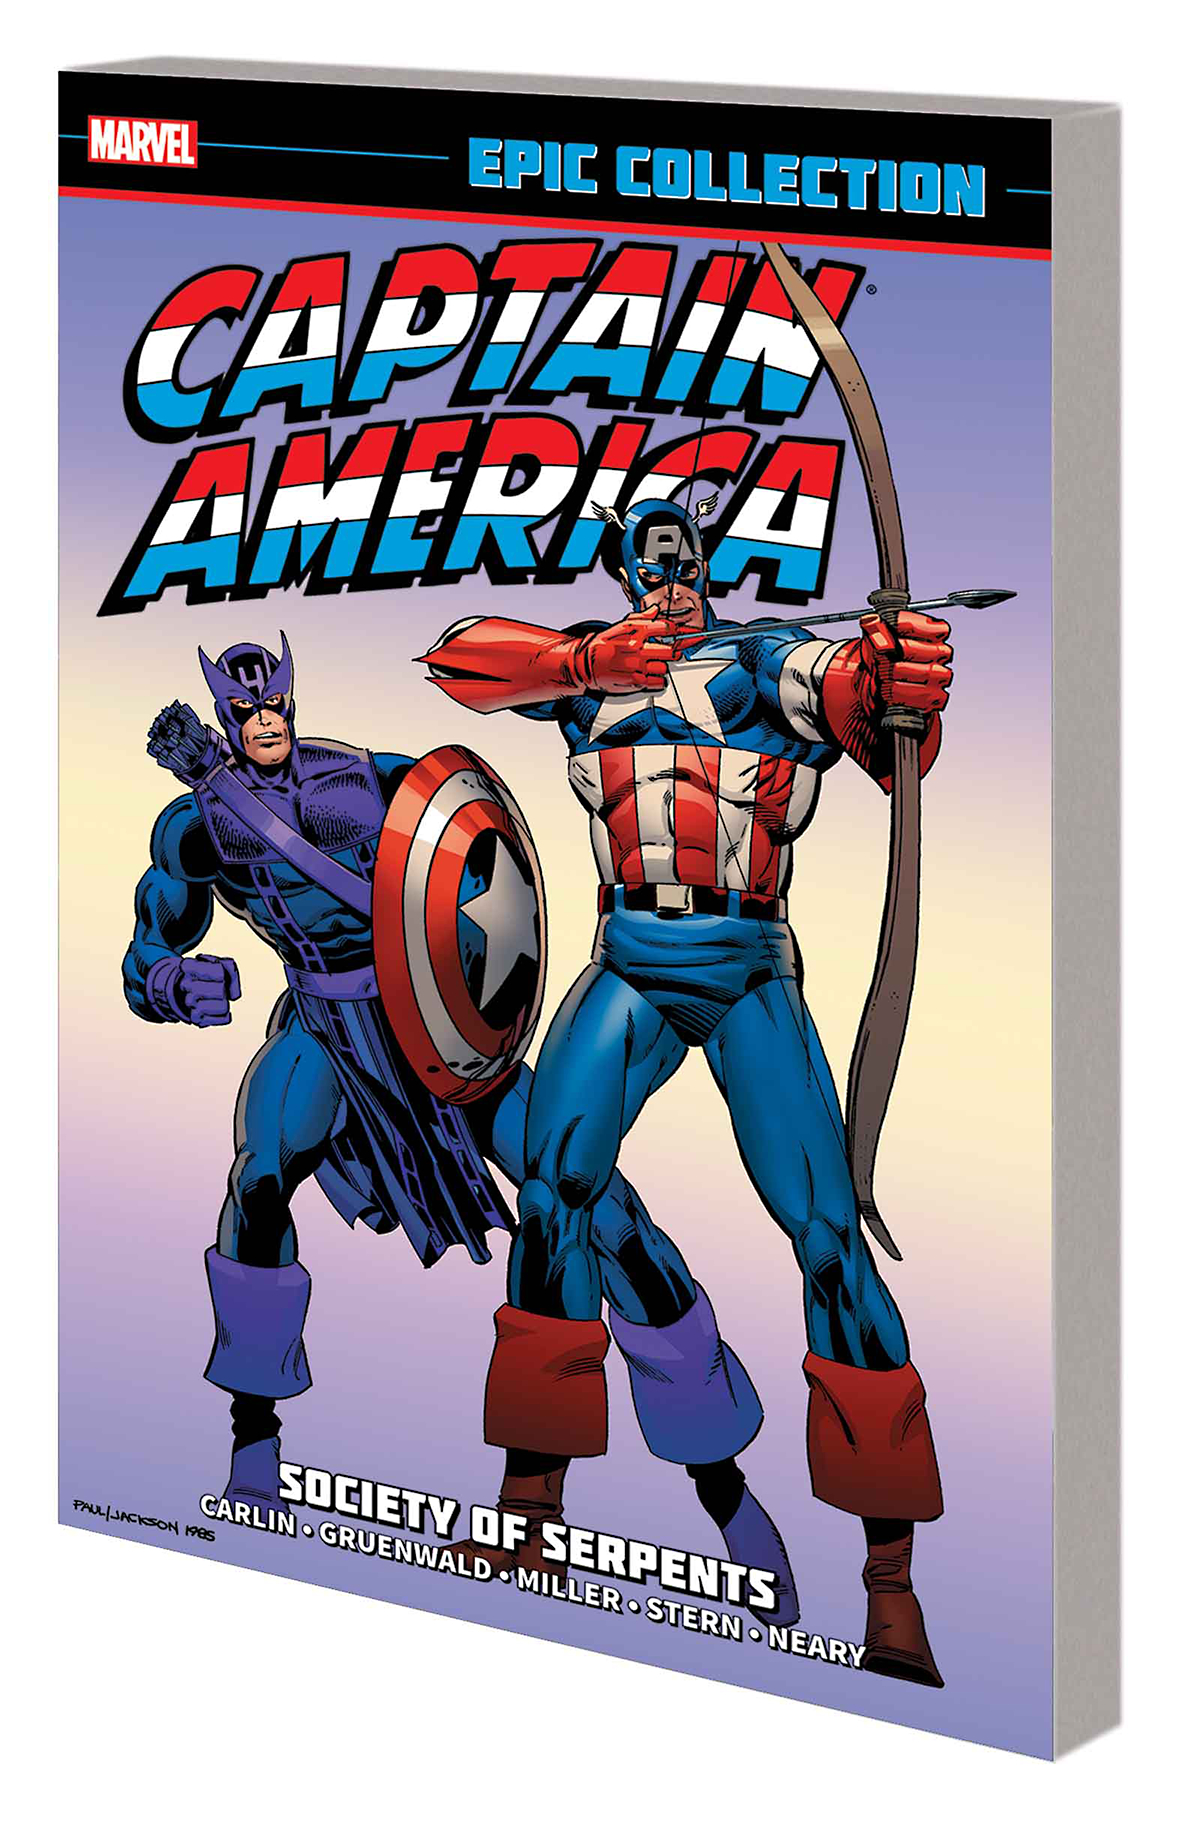 CAPTAIN AMERICA EPIC COLLECTION TP SOCIETY OF SERPENTS